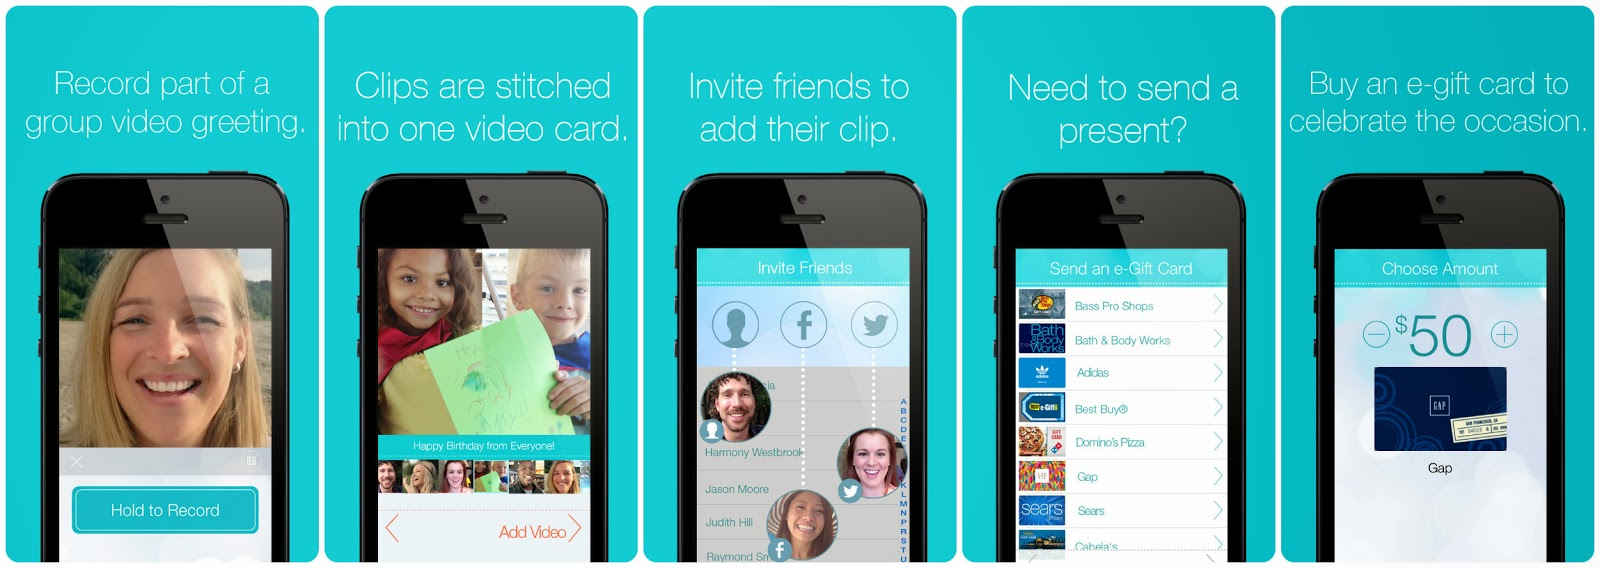 Record A Free Group Greeting On The Vello App Contest Over